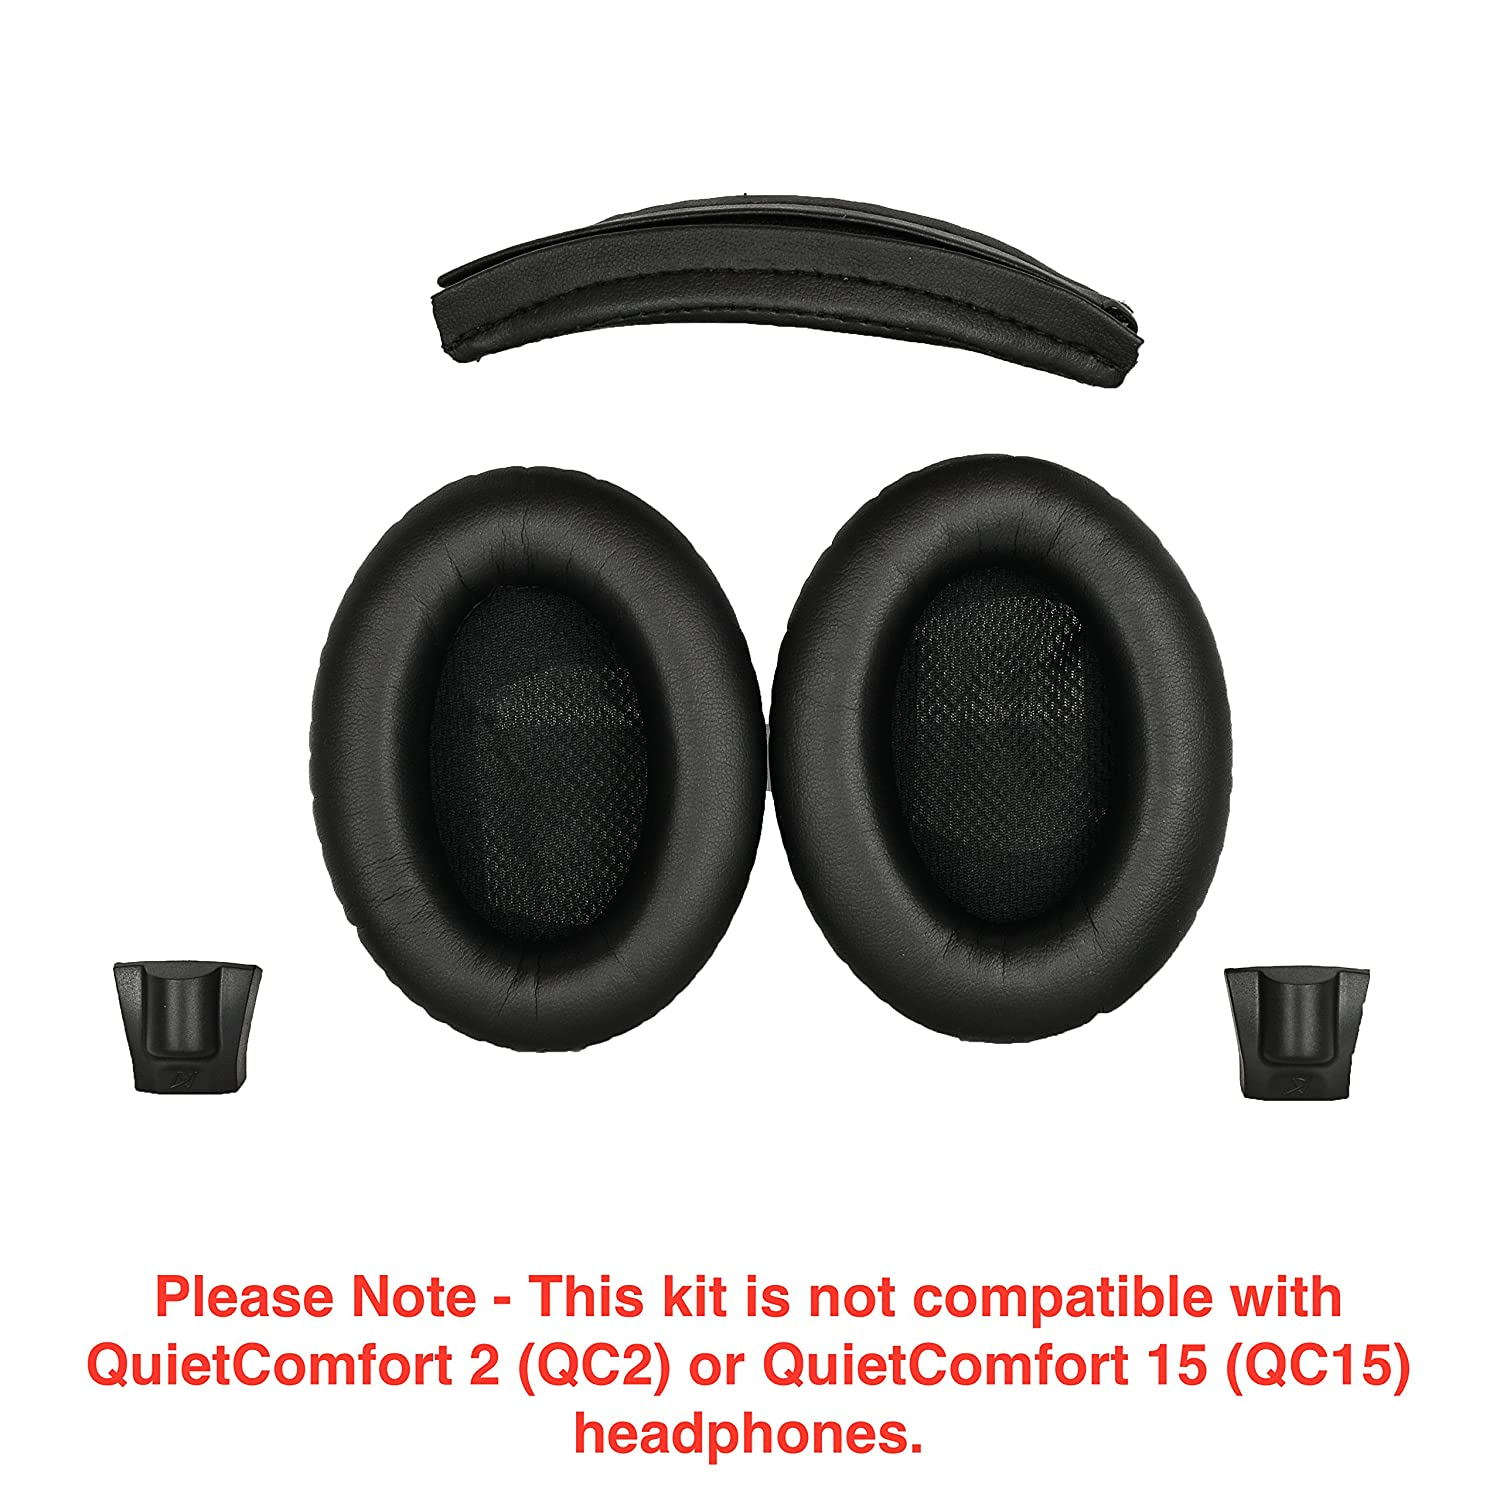 quiet case quietcomfort gocase headphones the in type flat fold bose and sony comforter pin for f comfort headphone